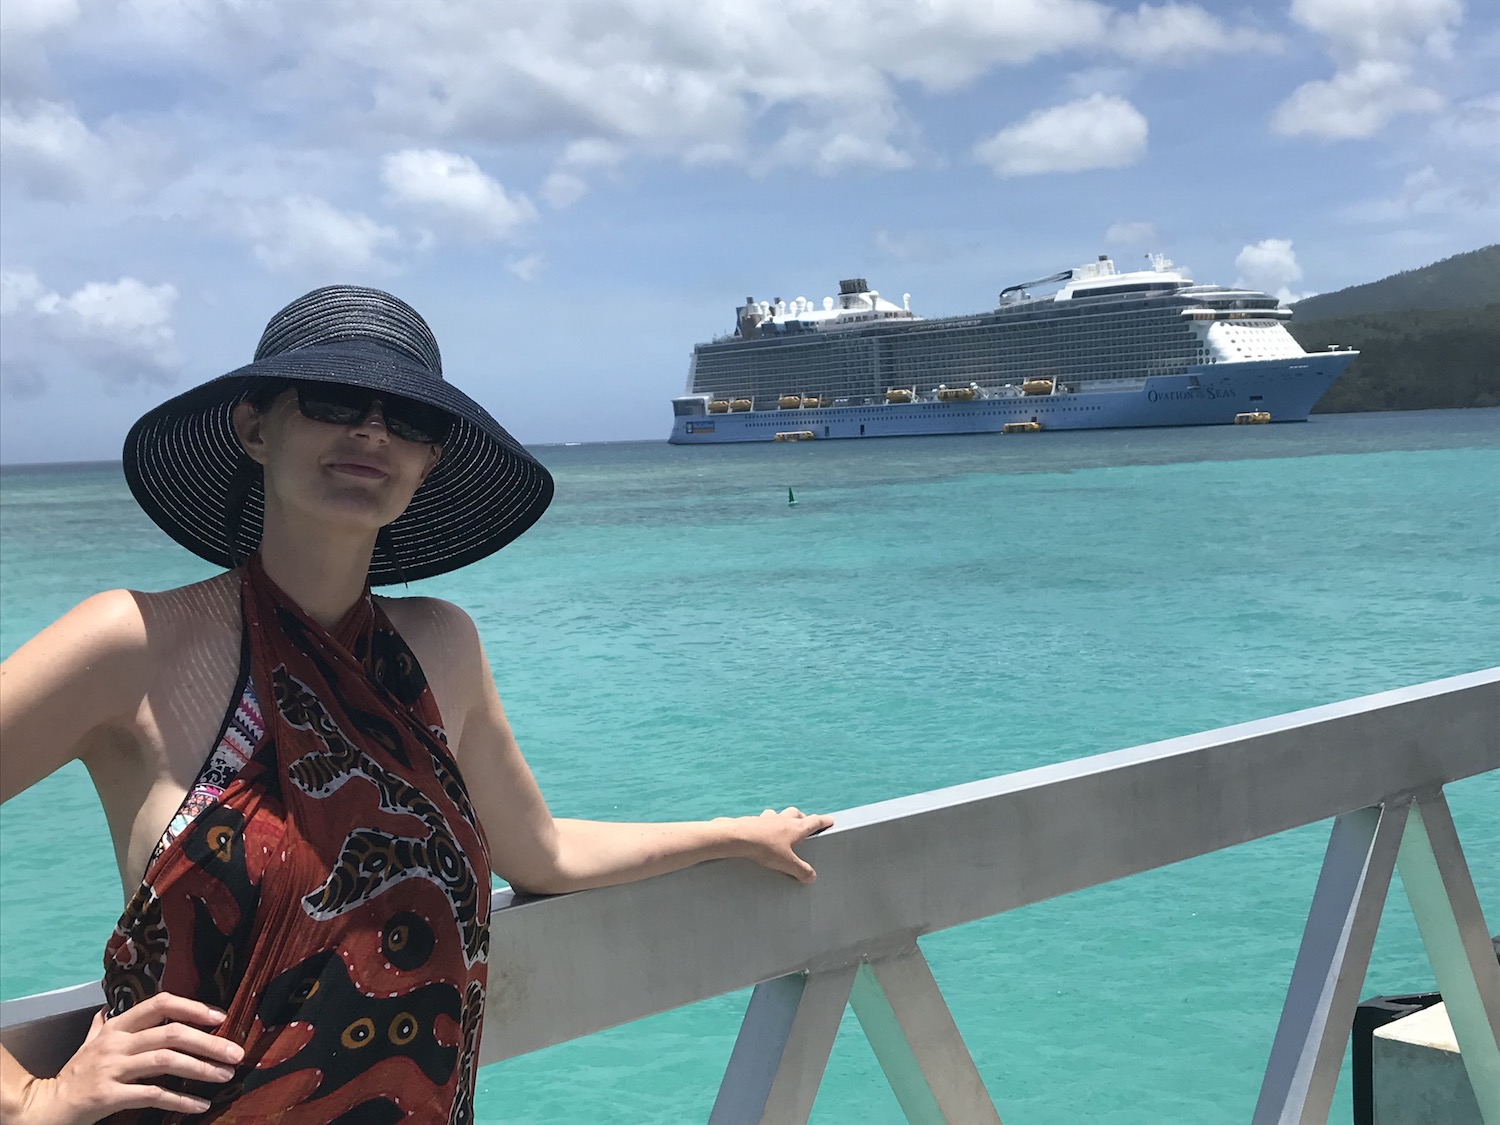 In this photo I am standing on the pier at Mystery Island, and you can see the Ovation of the Seas cruise shipping the back ground.